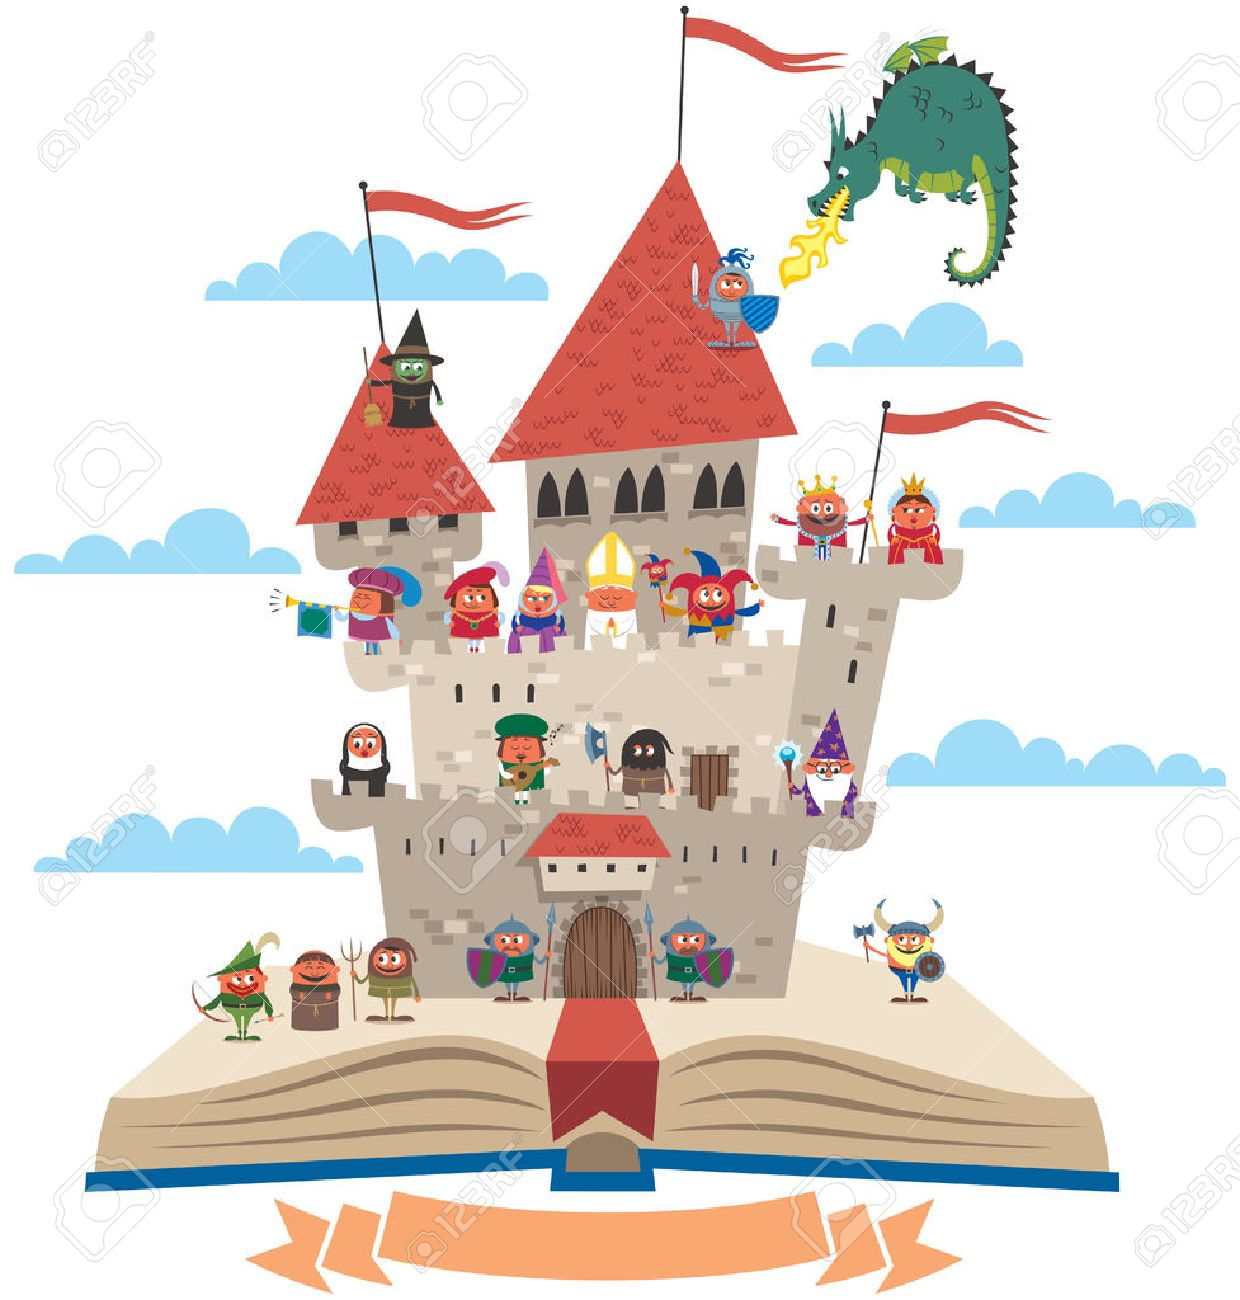 Open book with fairy tale castle on it, on white background. No transparency and gradients used. - 45028467